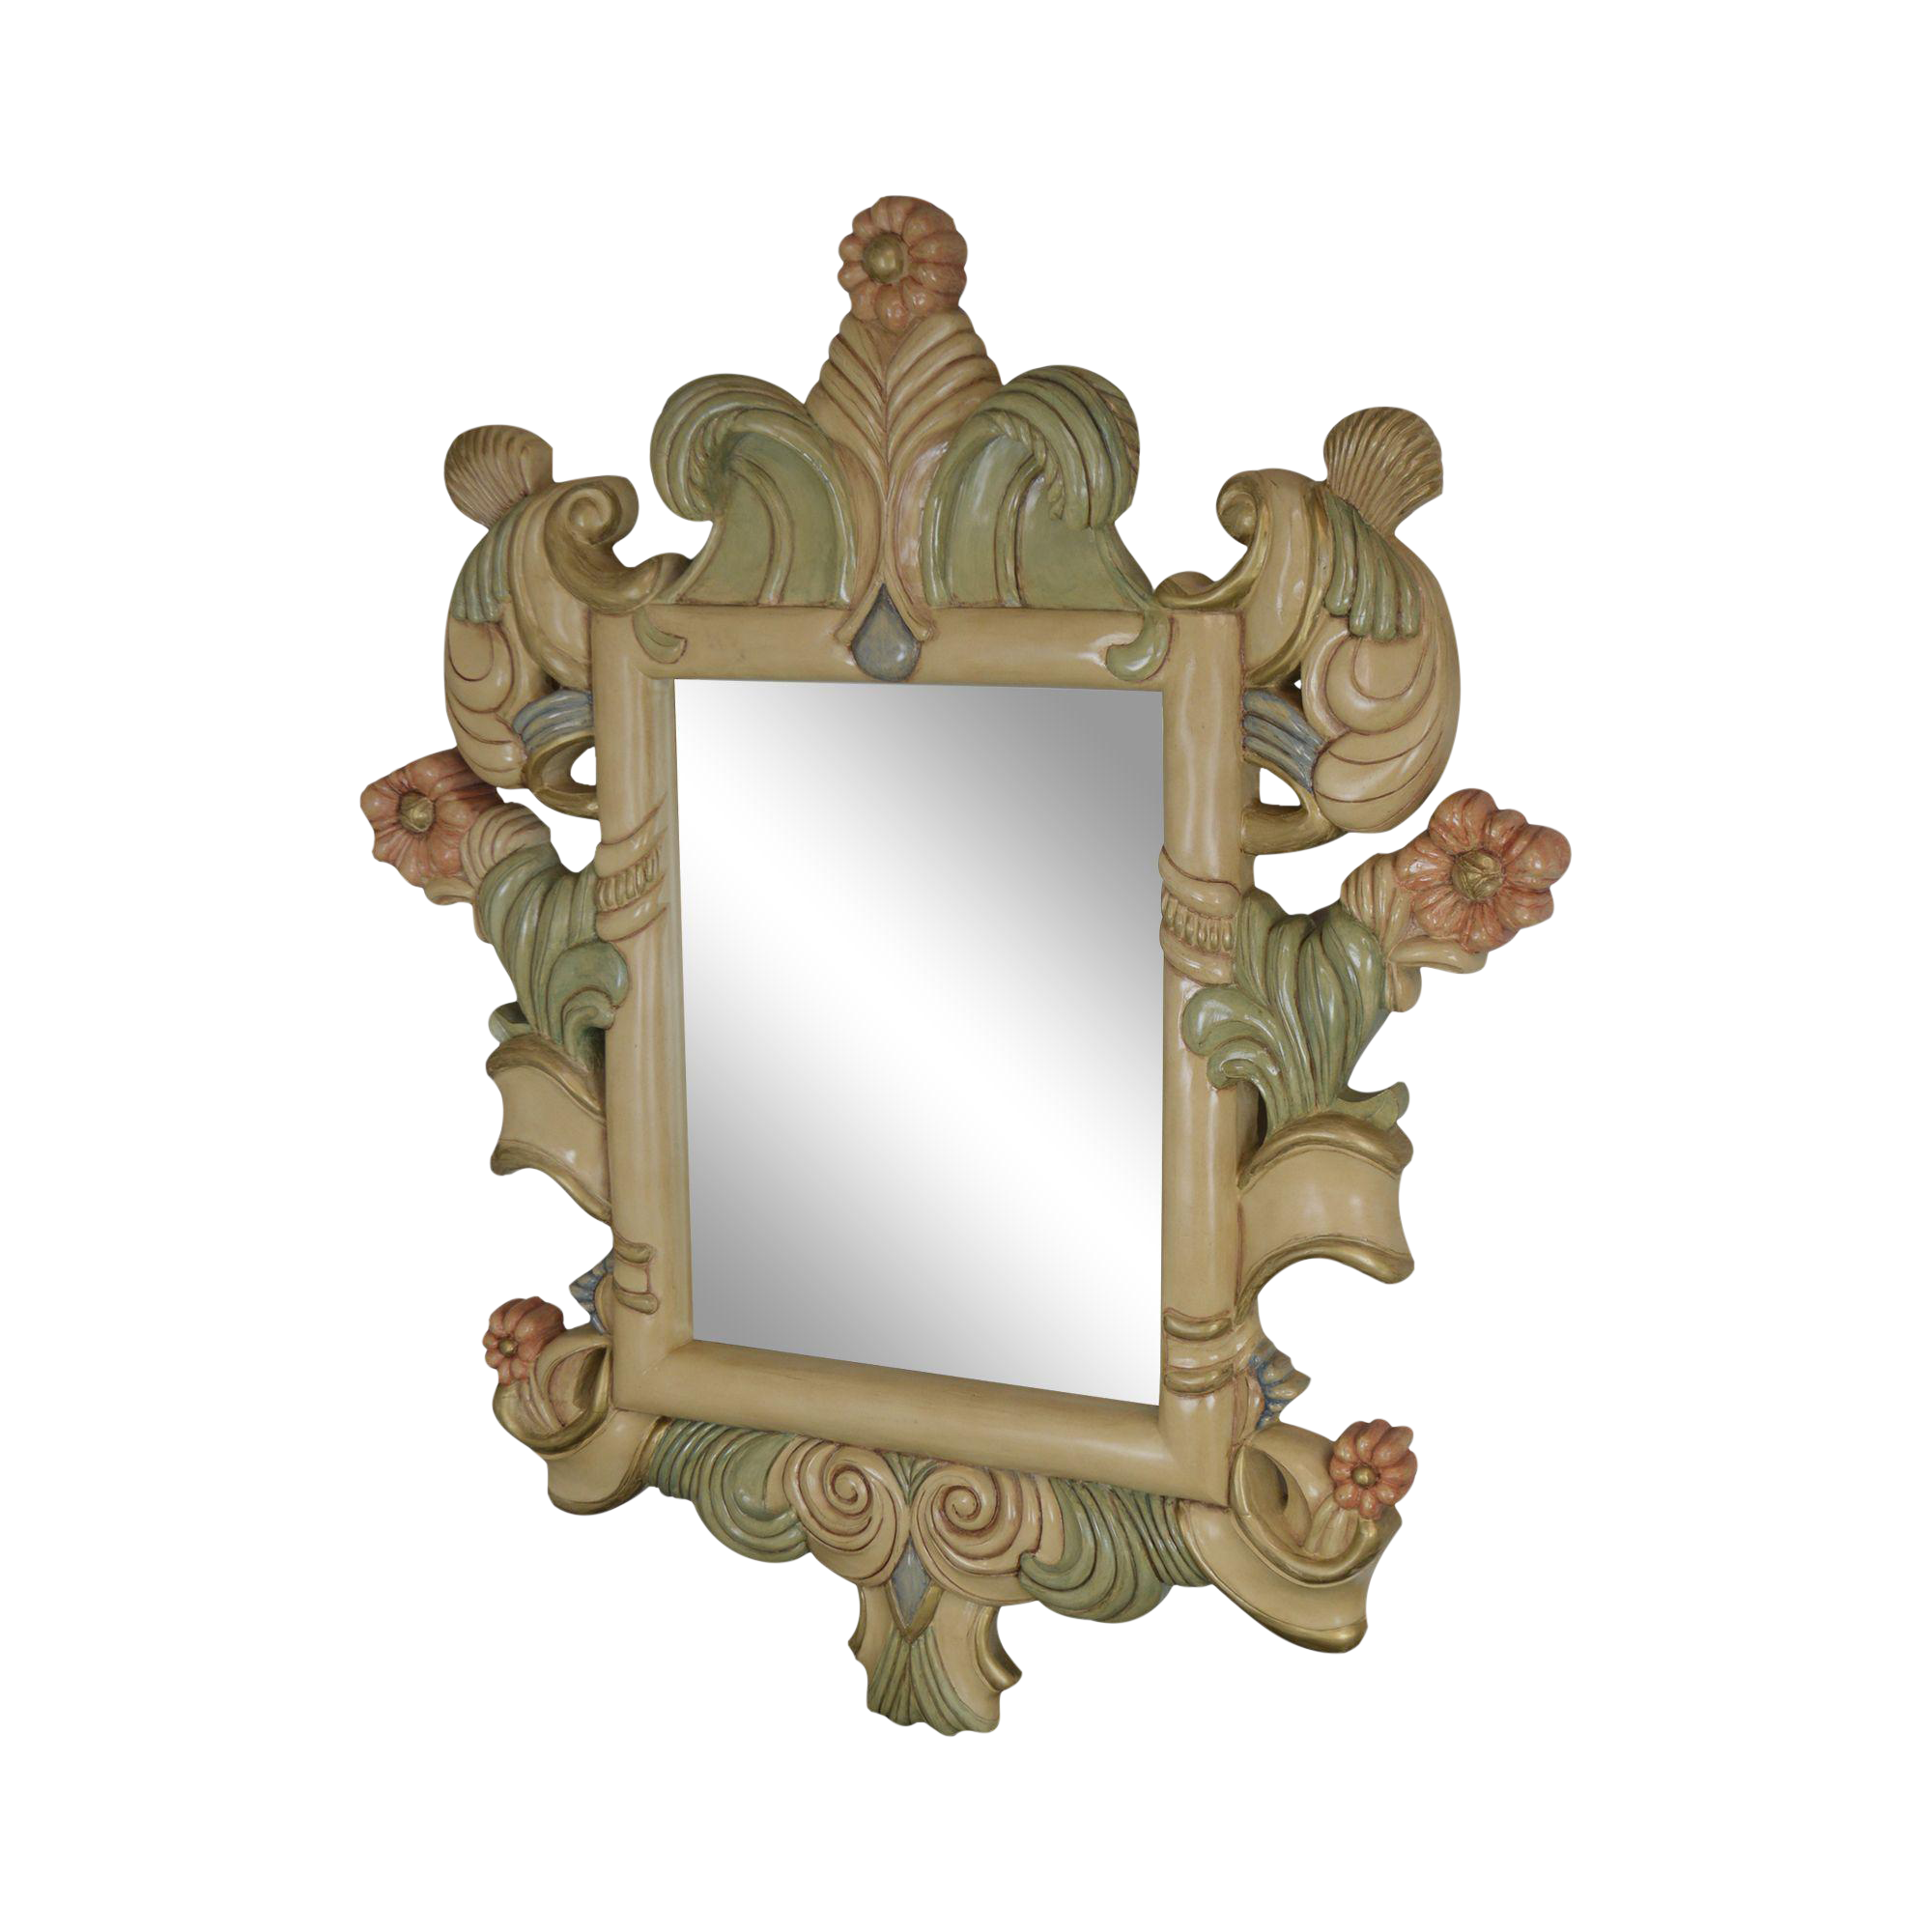 Quality Hand Painted Large Carved Wood Frame Beveled Wall Mirror Chairish